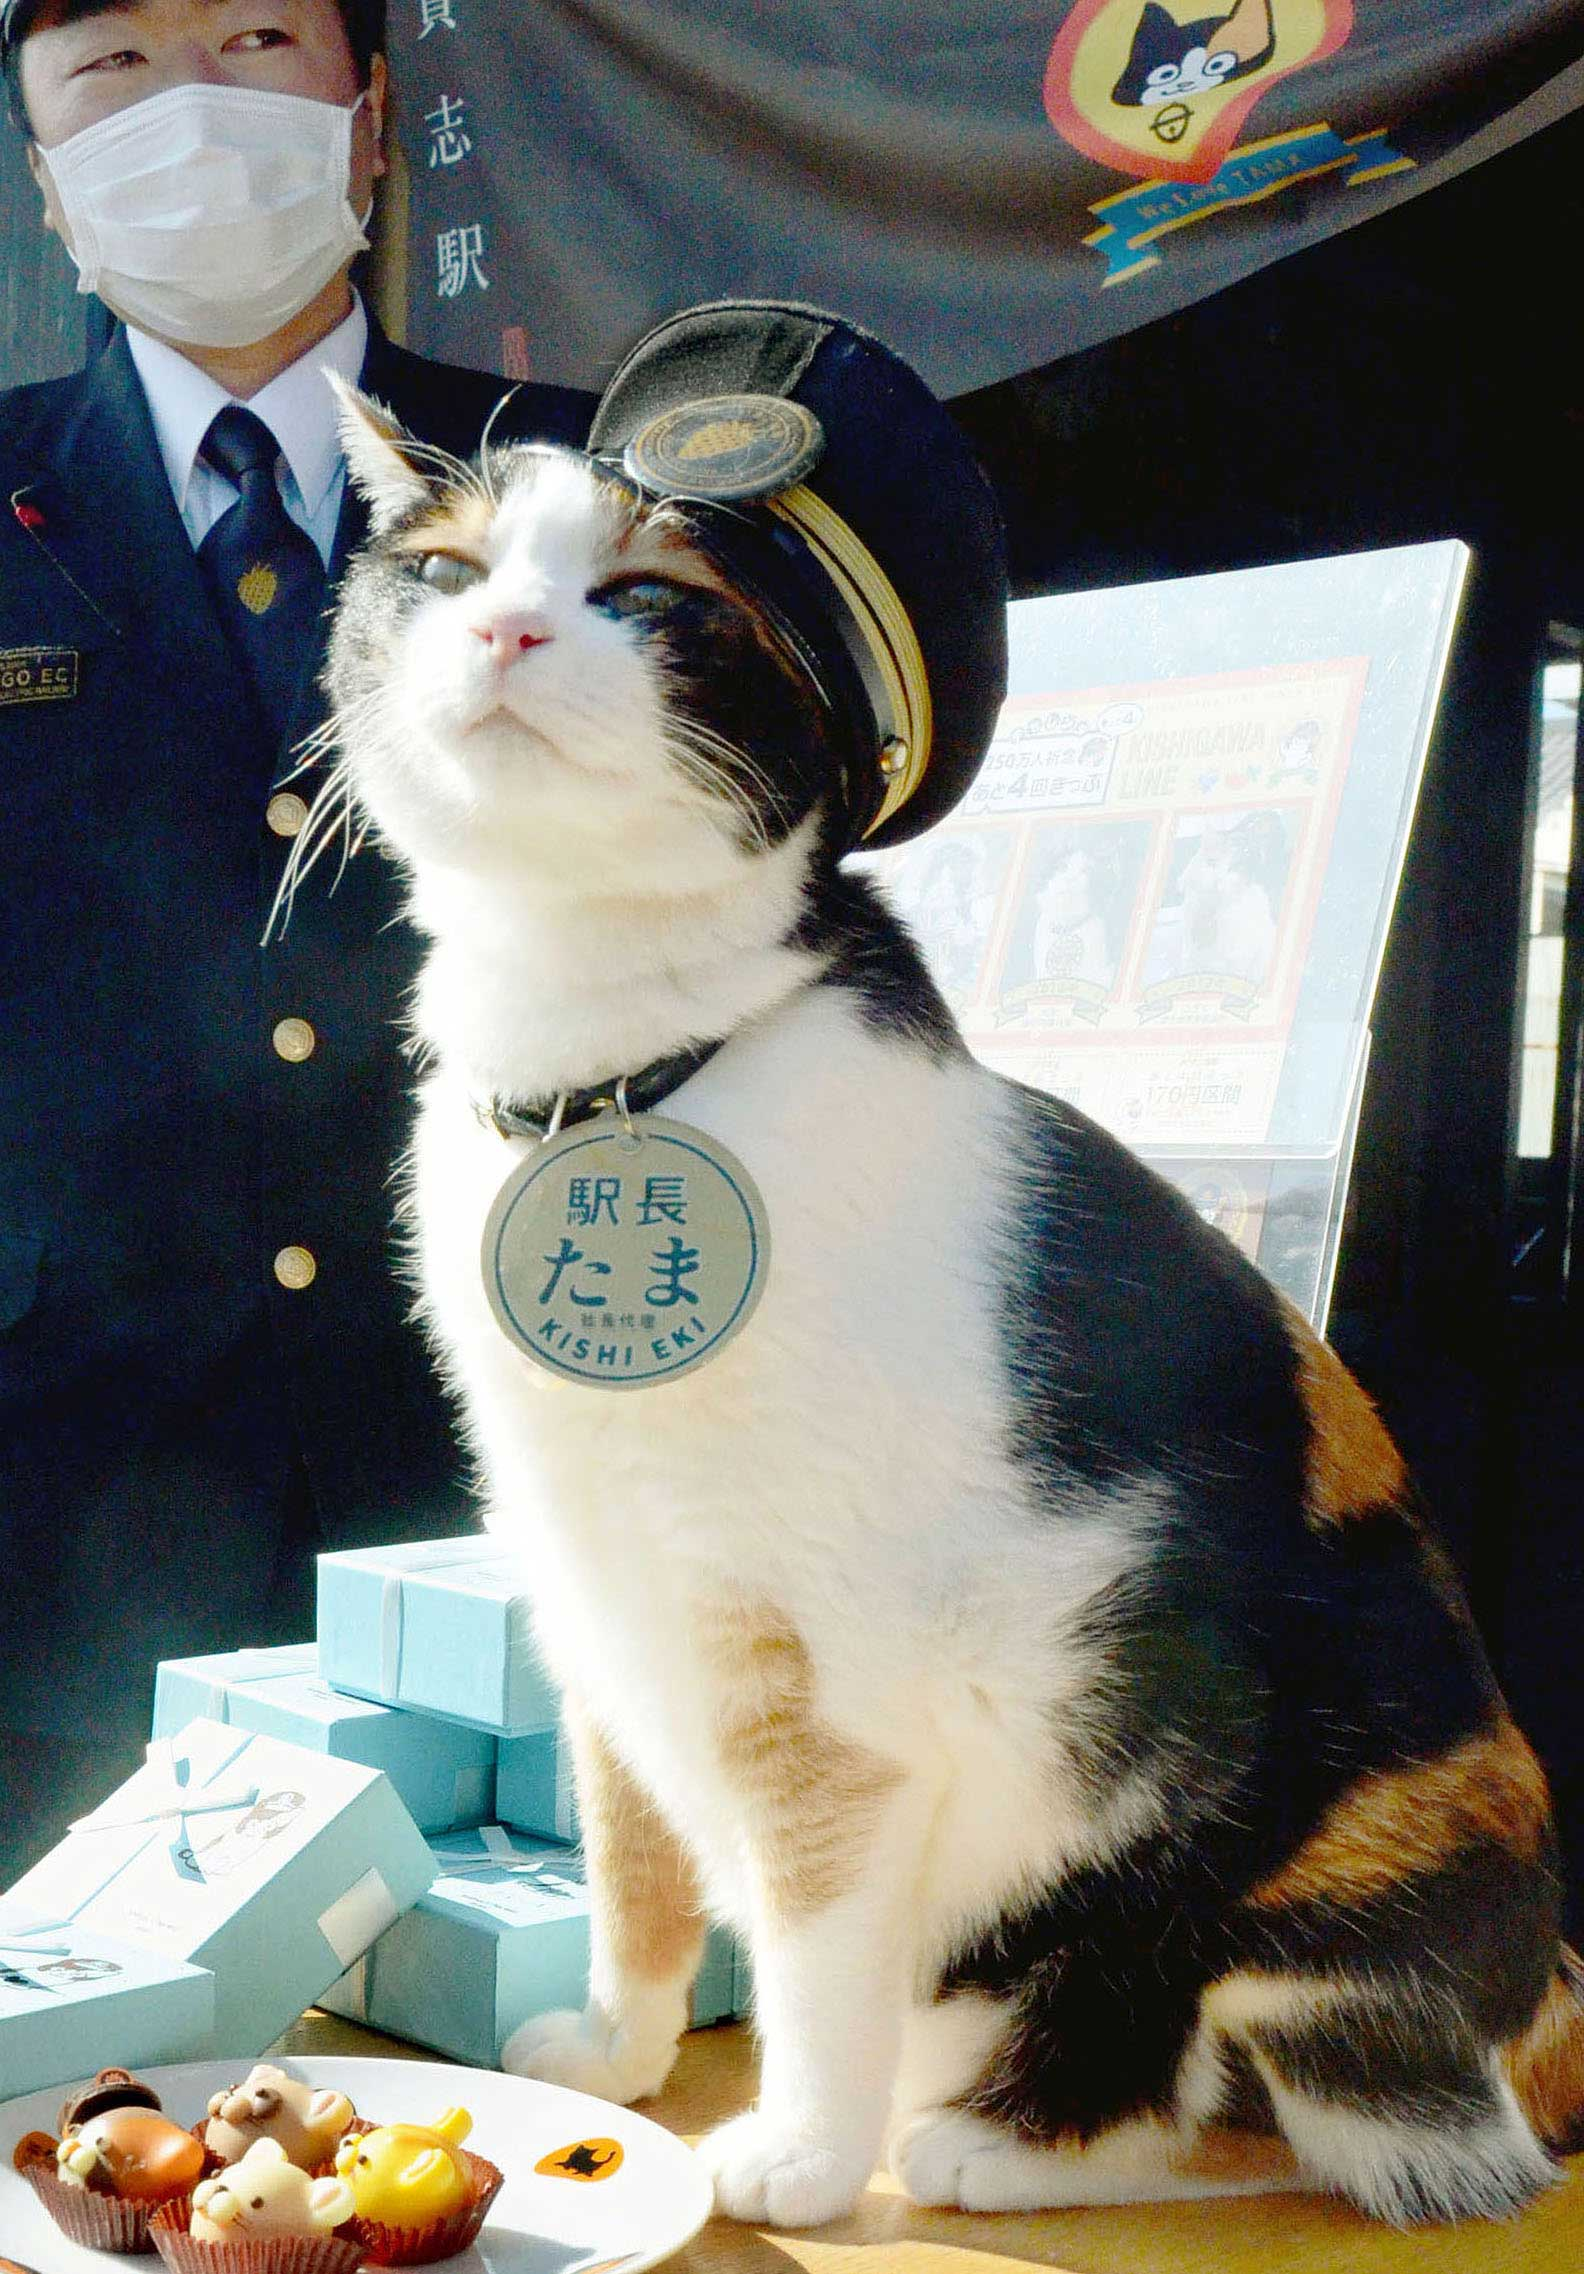 Tama, a cat stationmaster of a railway station in western Japan, attends an event at her Kishi Station in Wakayama Prefecture, Japan in Jan., 2013.